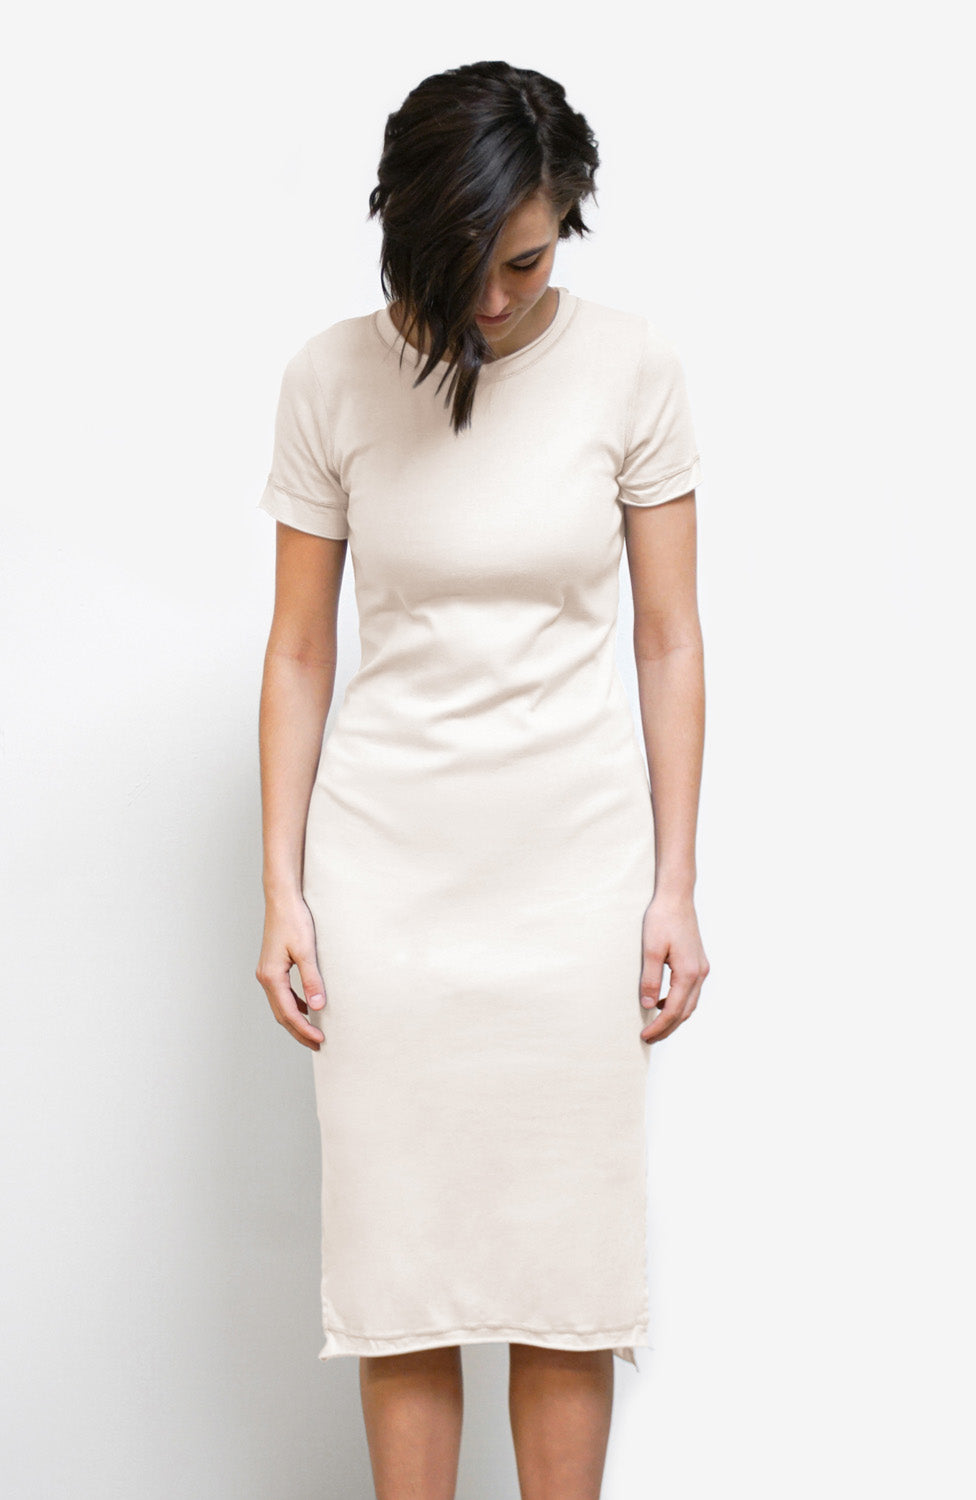 Alabama Chanin The Essential Rib Dress Women's Organic Cotton Dress with Short Sleeves in Natural on Model